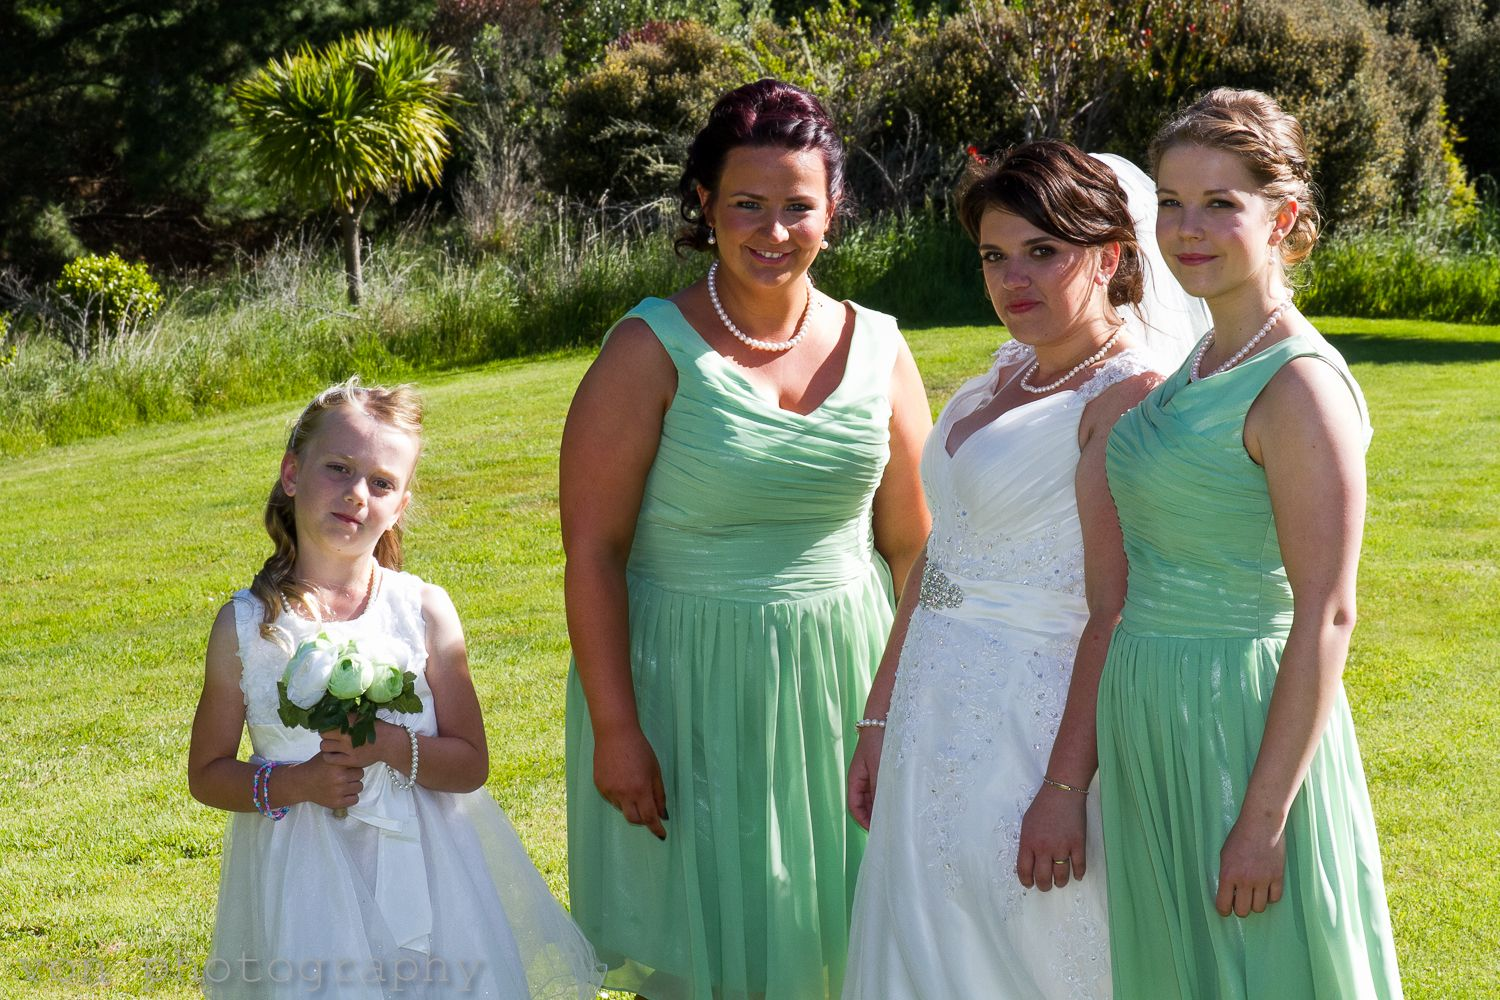 Bride and Bridesmaids Mint Green dresses  Image by Wellington wedding photographer David from Von photography www.wellingtonphotography.net